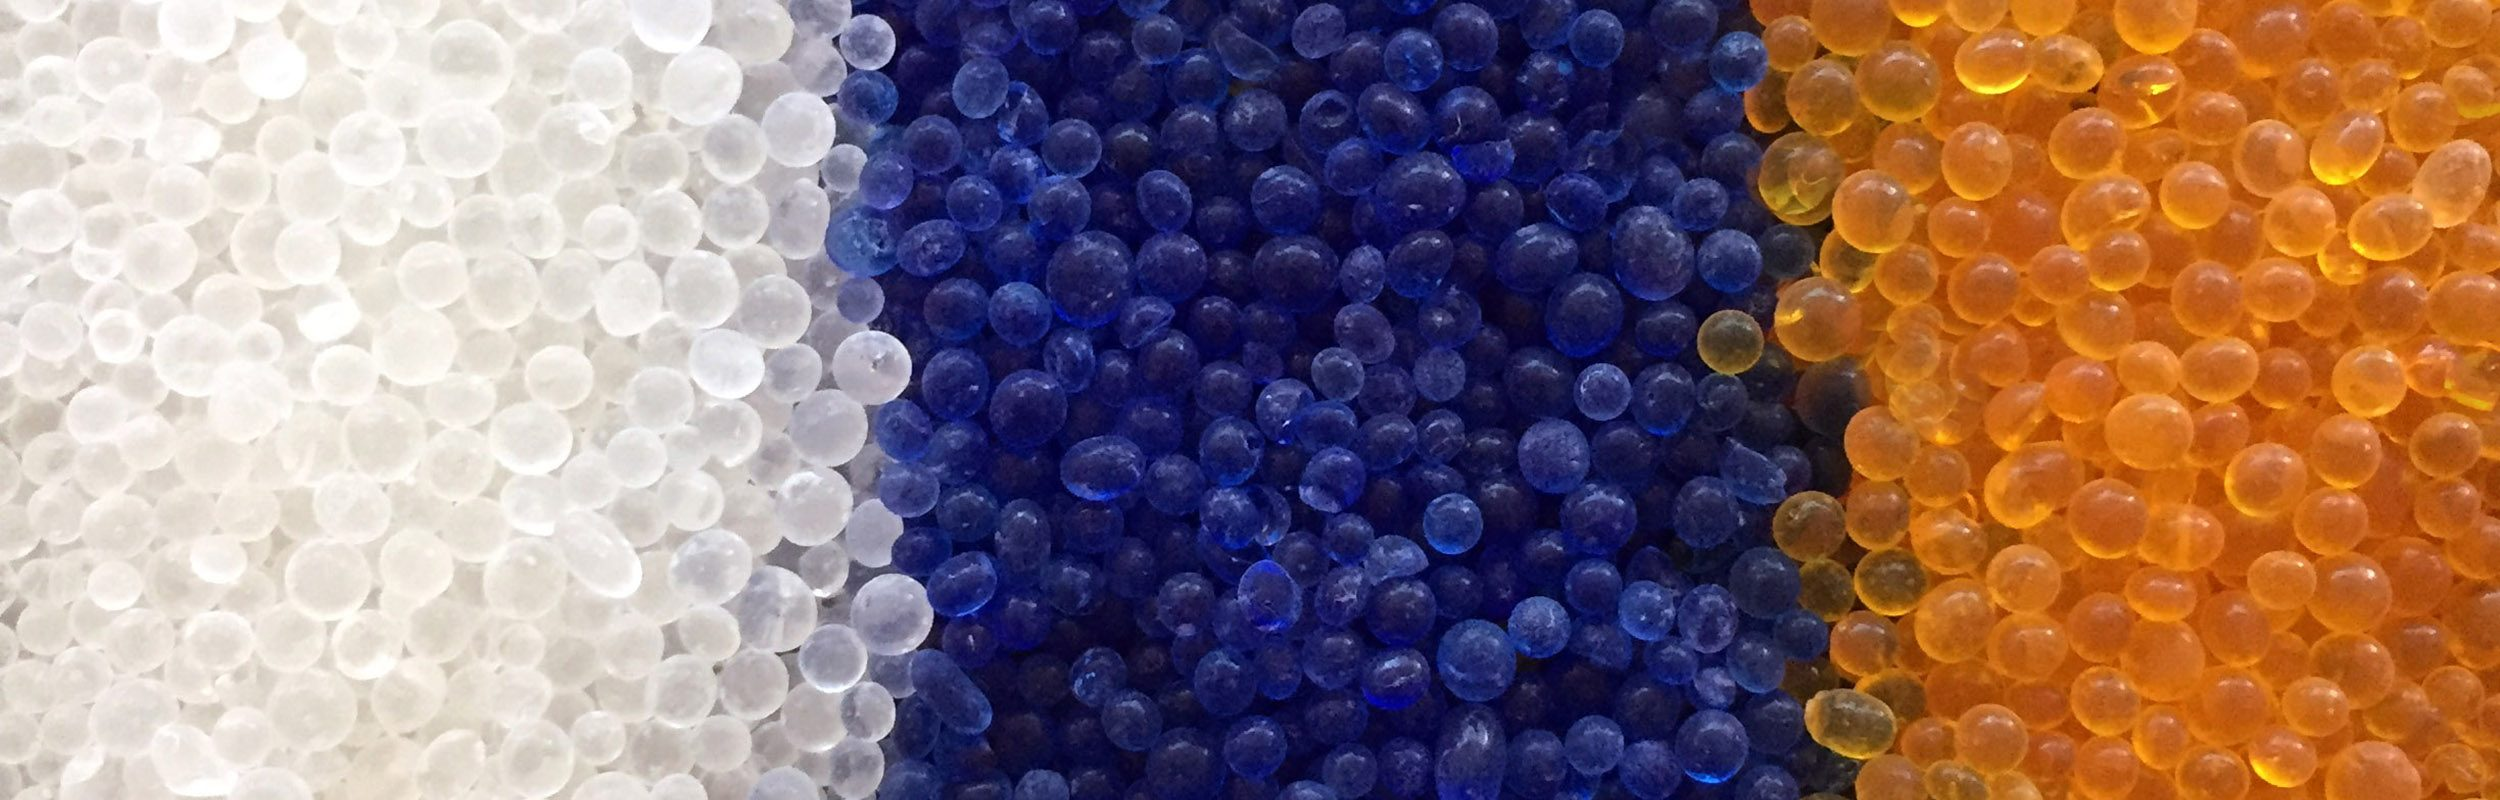 Silica Gel: White (non-indicating), Blue (indicates as pink), Yellow (indicates as green), and More Options...